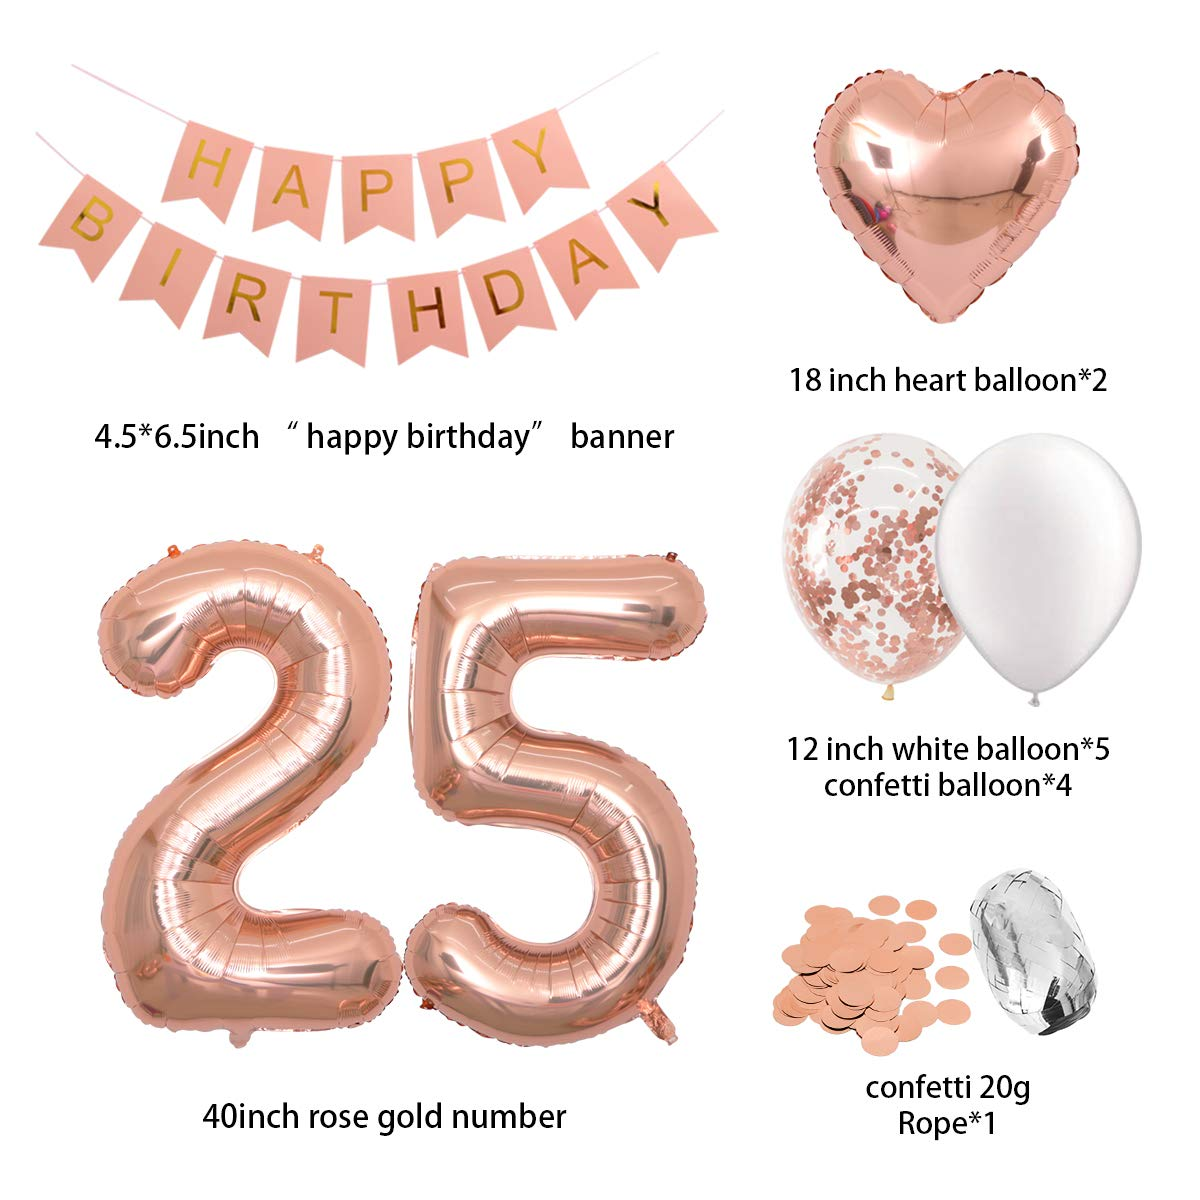 Birthday Decorations Happy Birthday Banner 40inch Rose Gold Number 25 Balloons Rose Gold Confetti Balloons 1 in Diameter Heart Confetti for 25th Birthday Party Supplies Photo Props Rose Gold 25